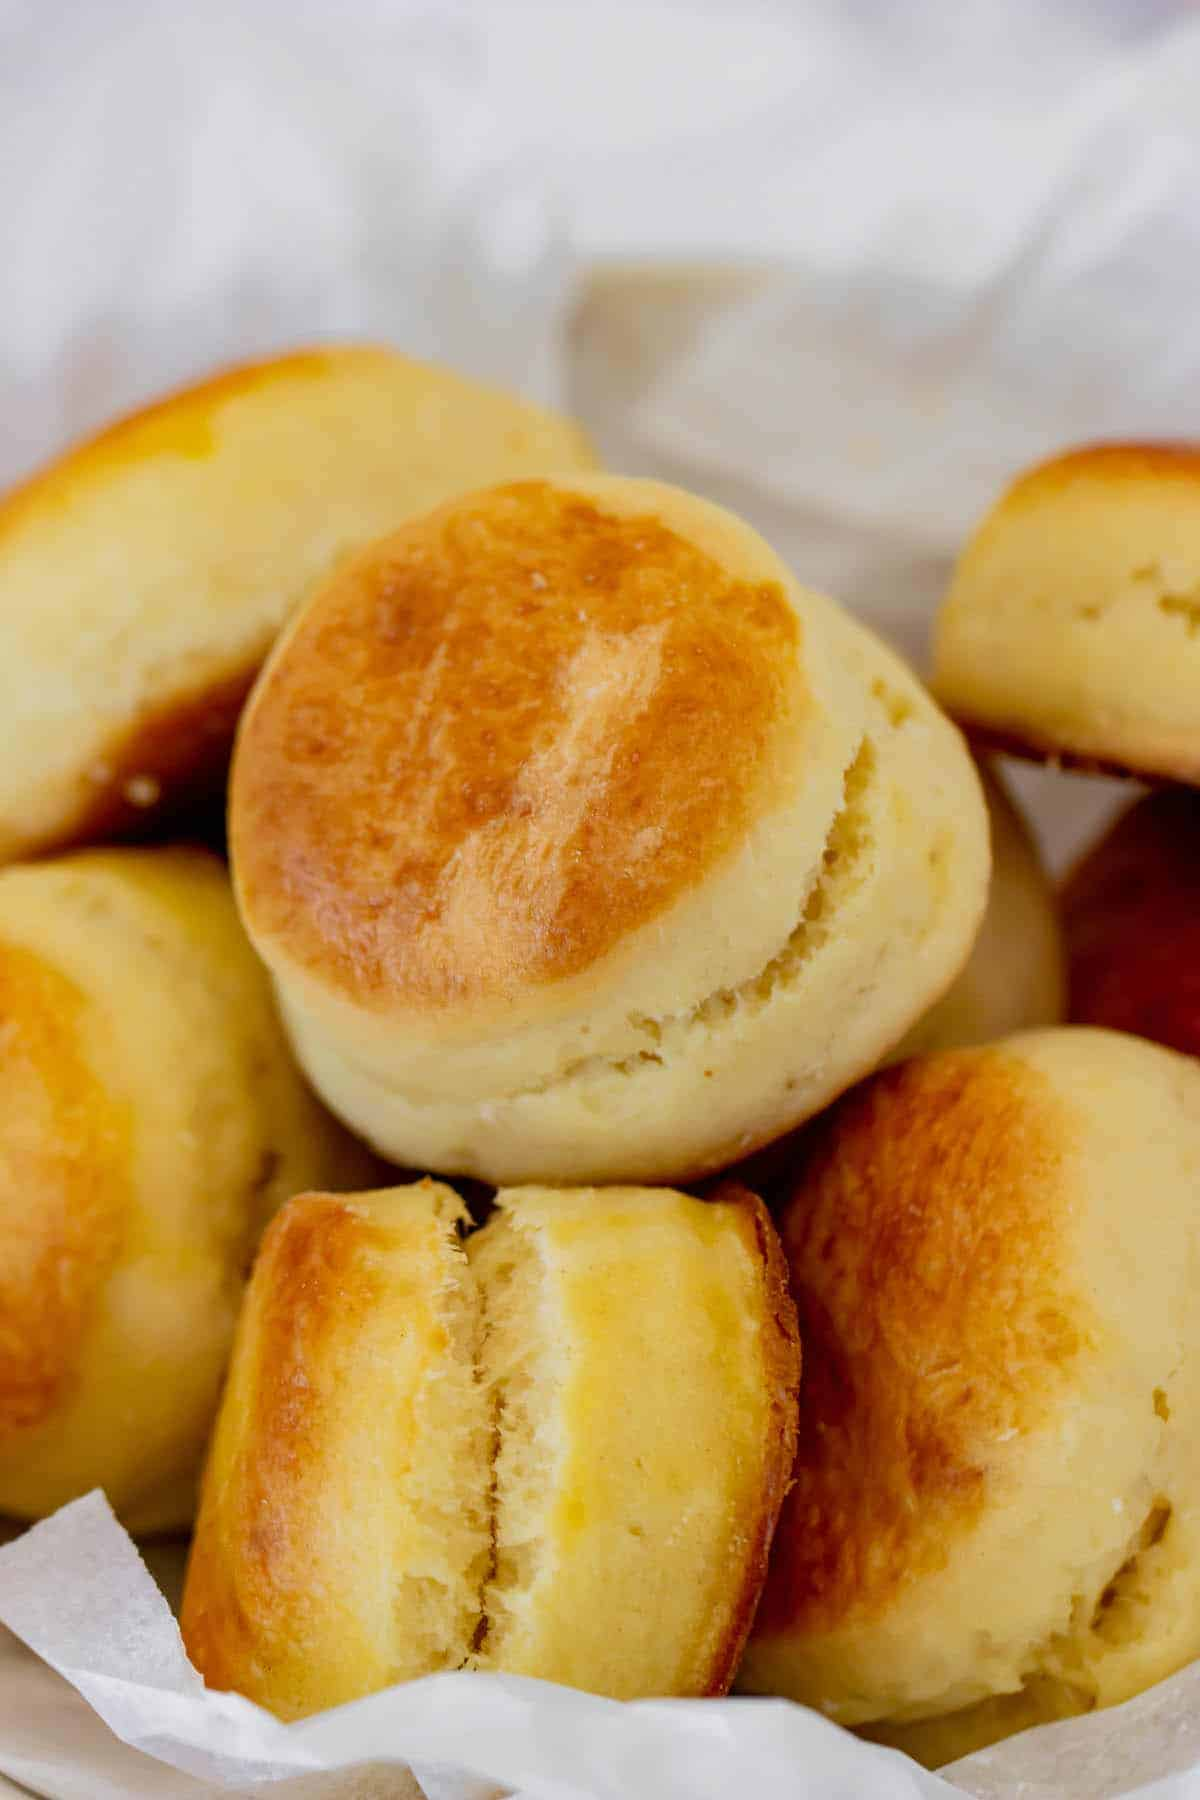 A Close-Up Shot of Freshly Baked Biscuits in a Basket